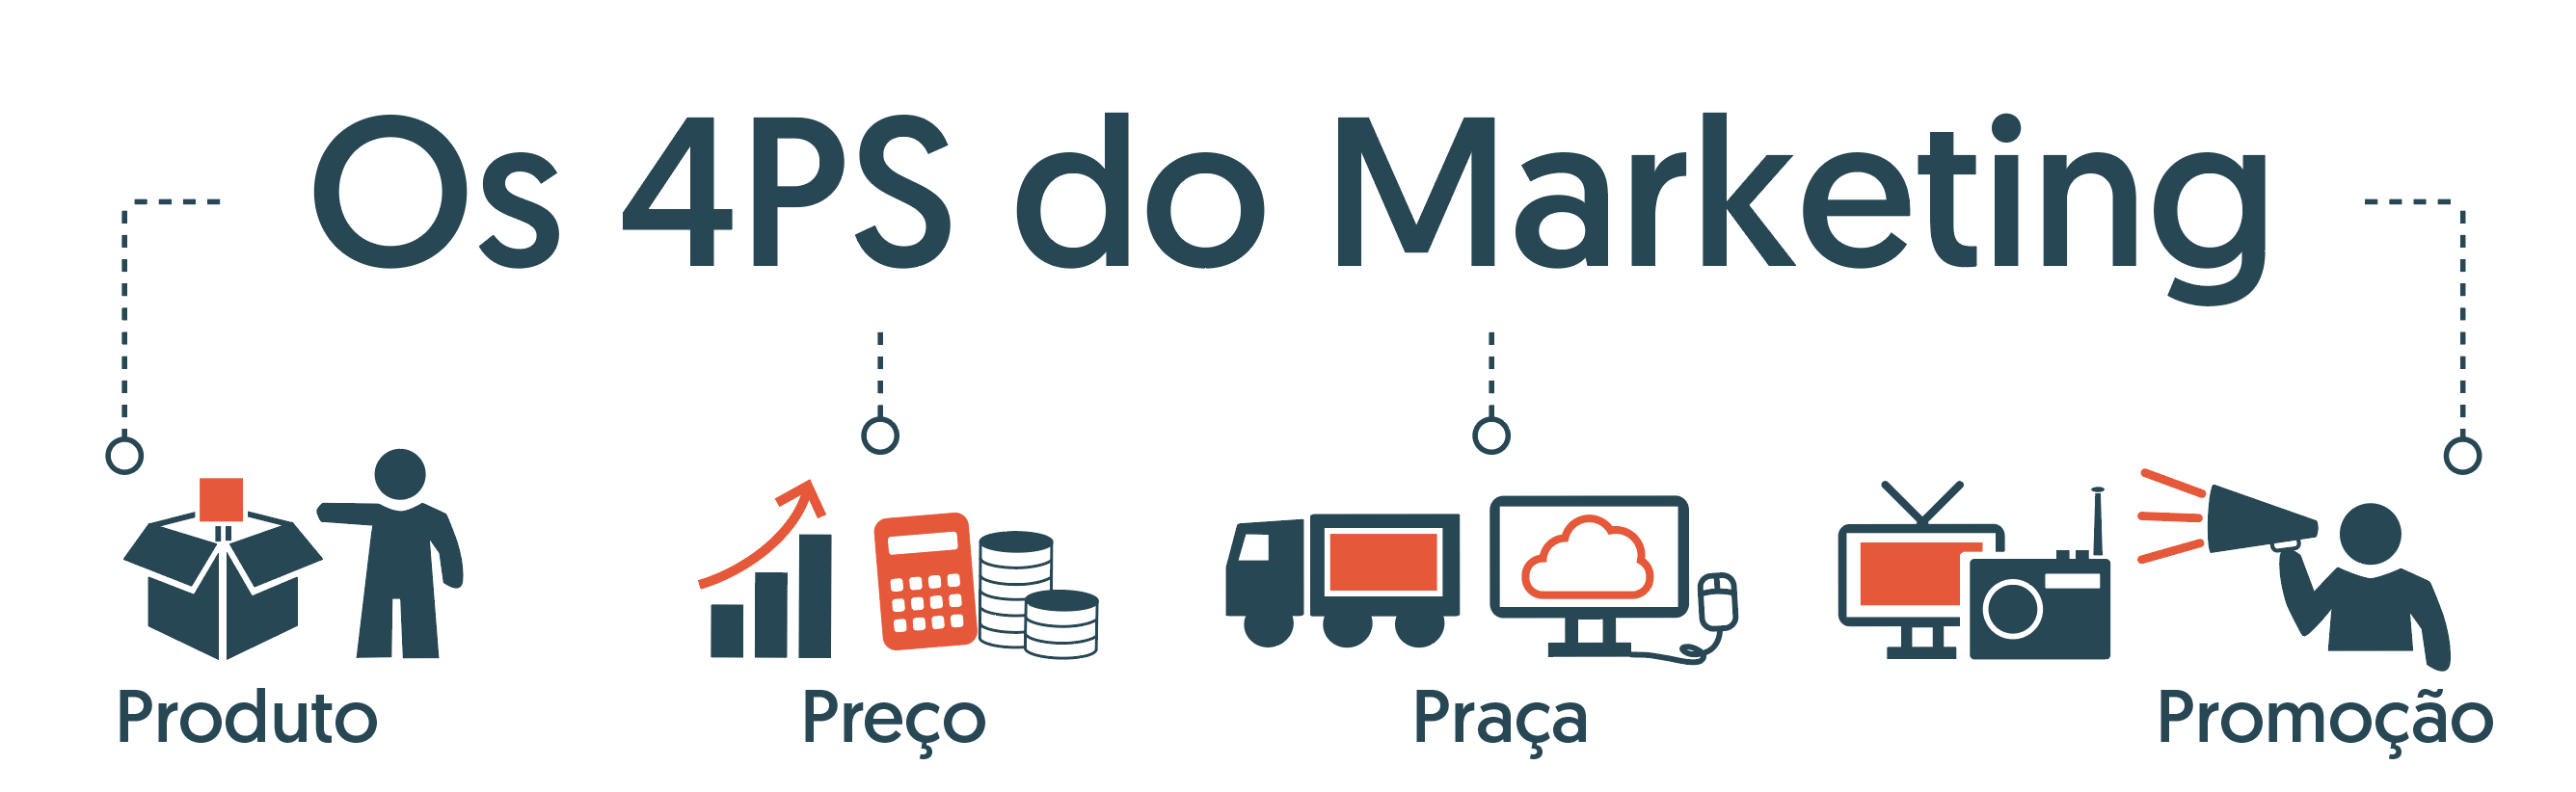 os 4ps do marketing